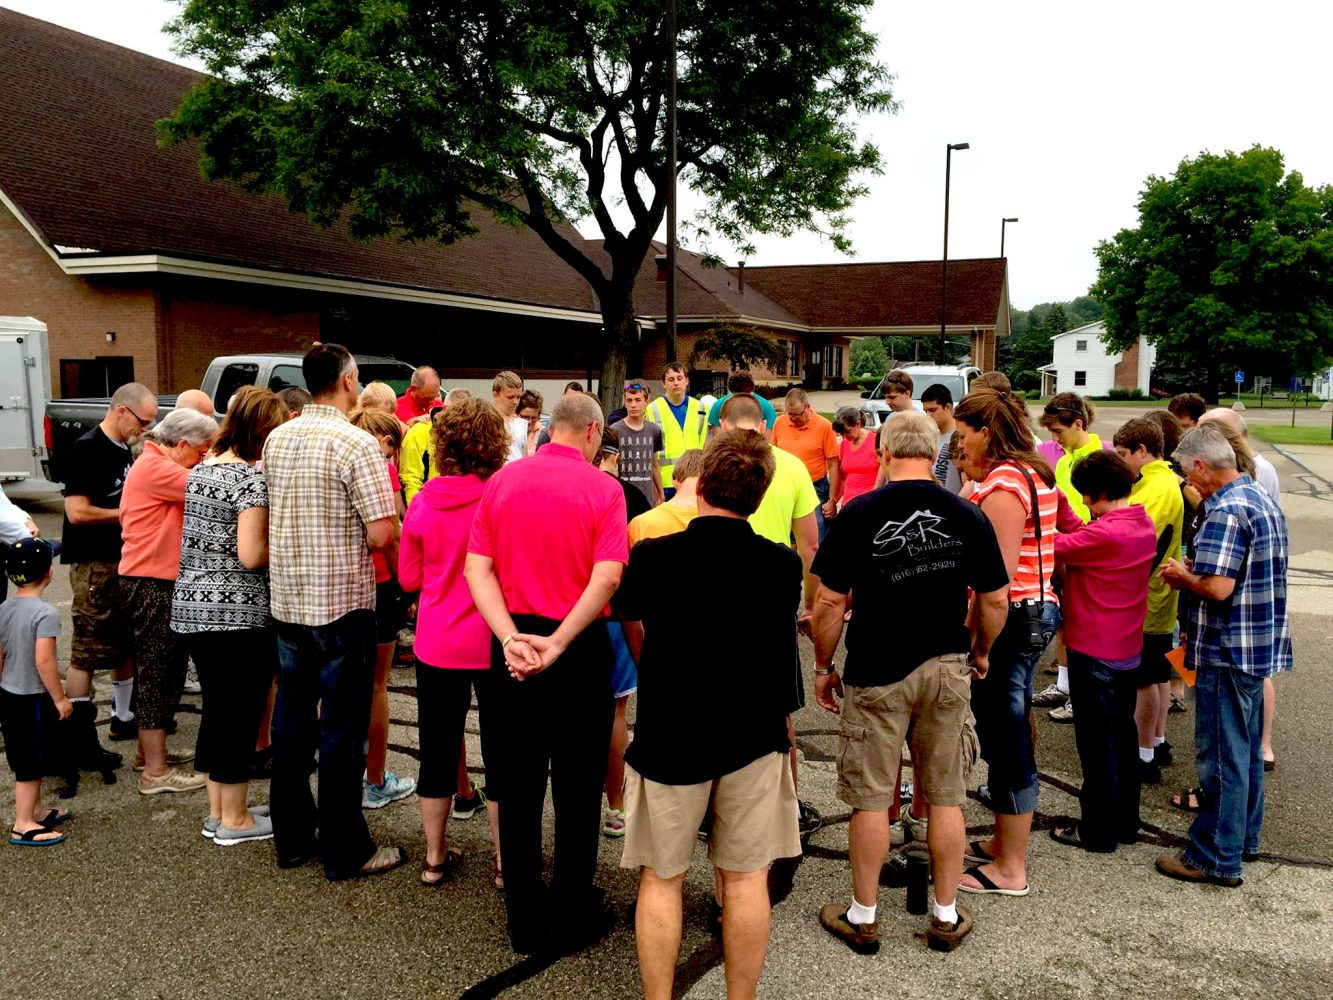 Covenant CRC gathers outdoors to pray. Photo courtesy Covenant CRC.